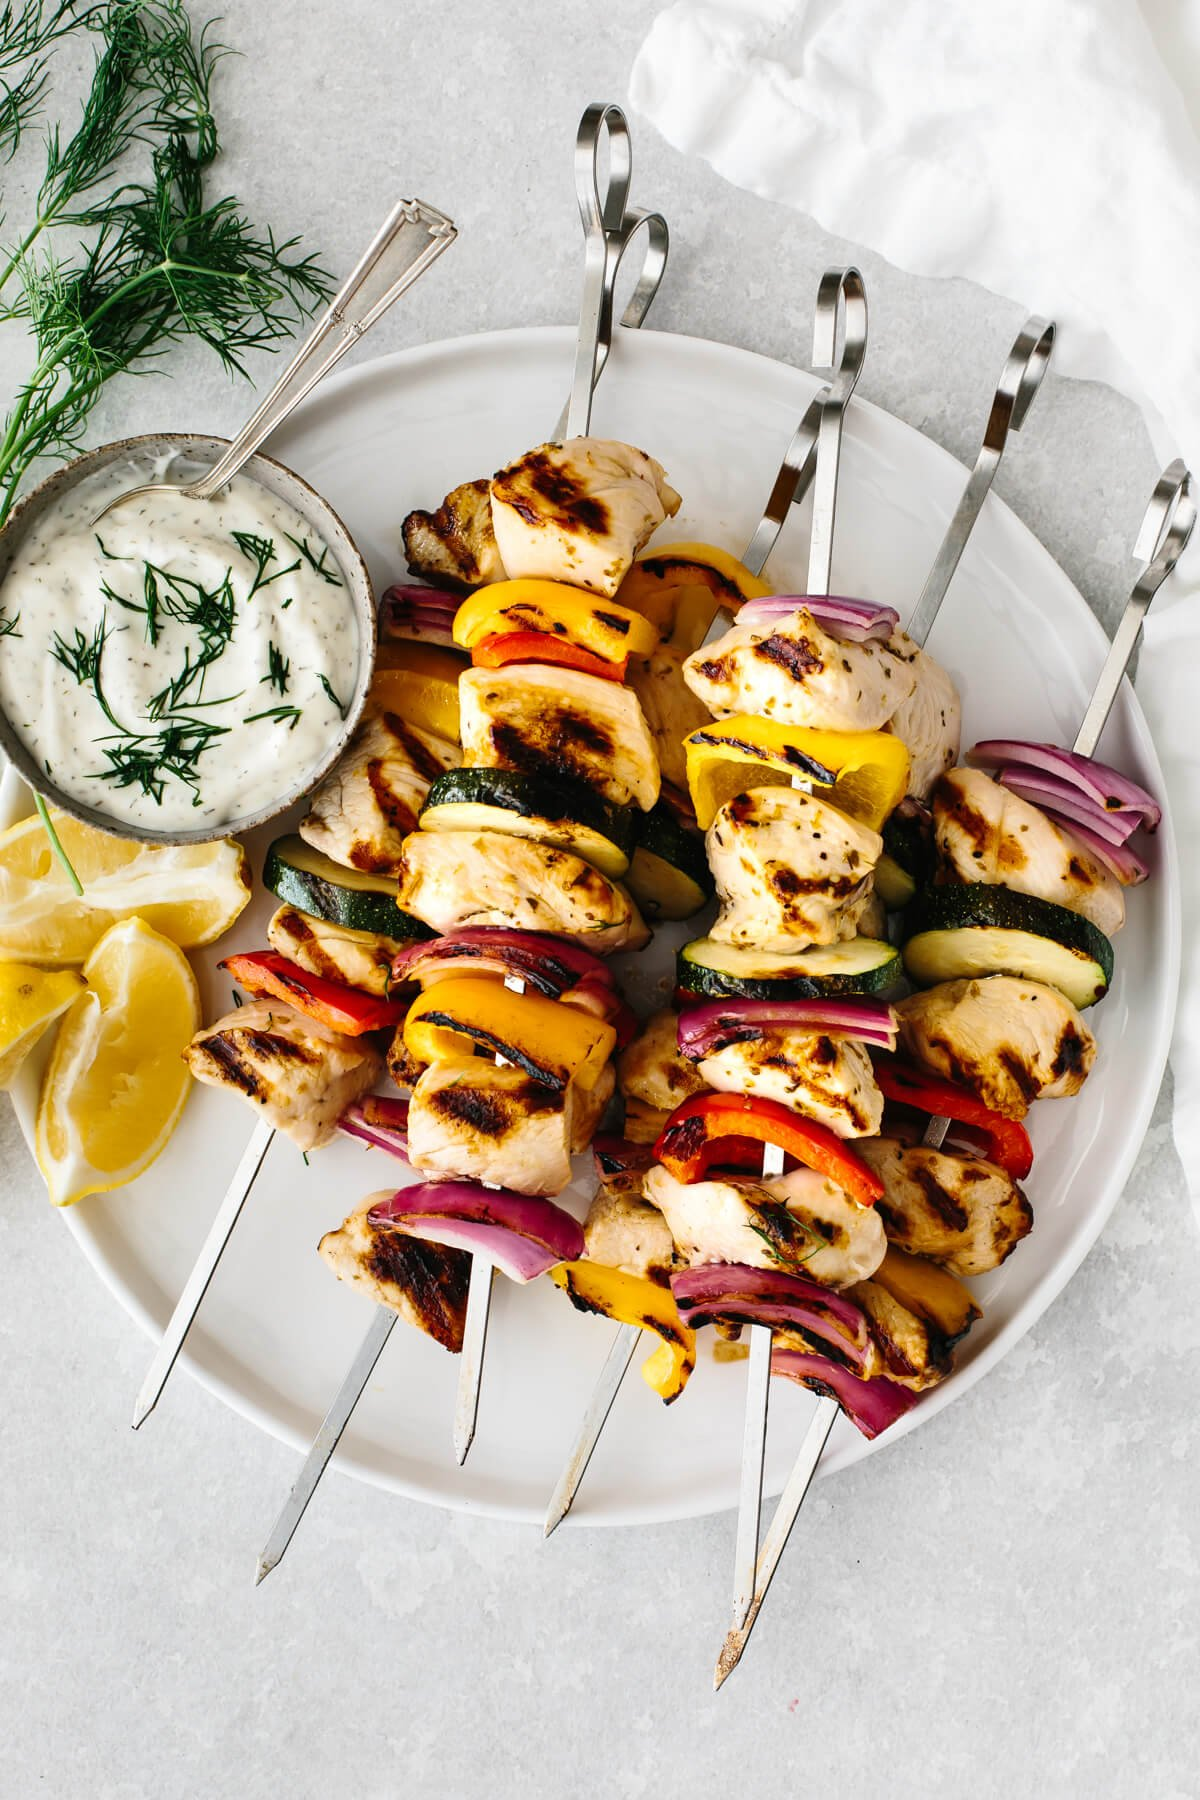 A plate full of cooked chicken kebabs, next to tzatziki sauce.